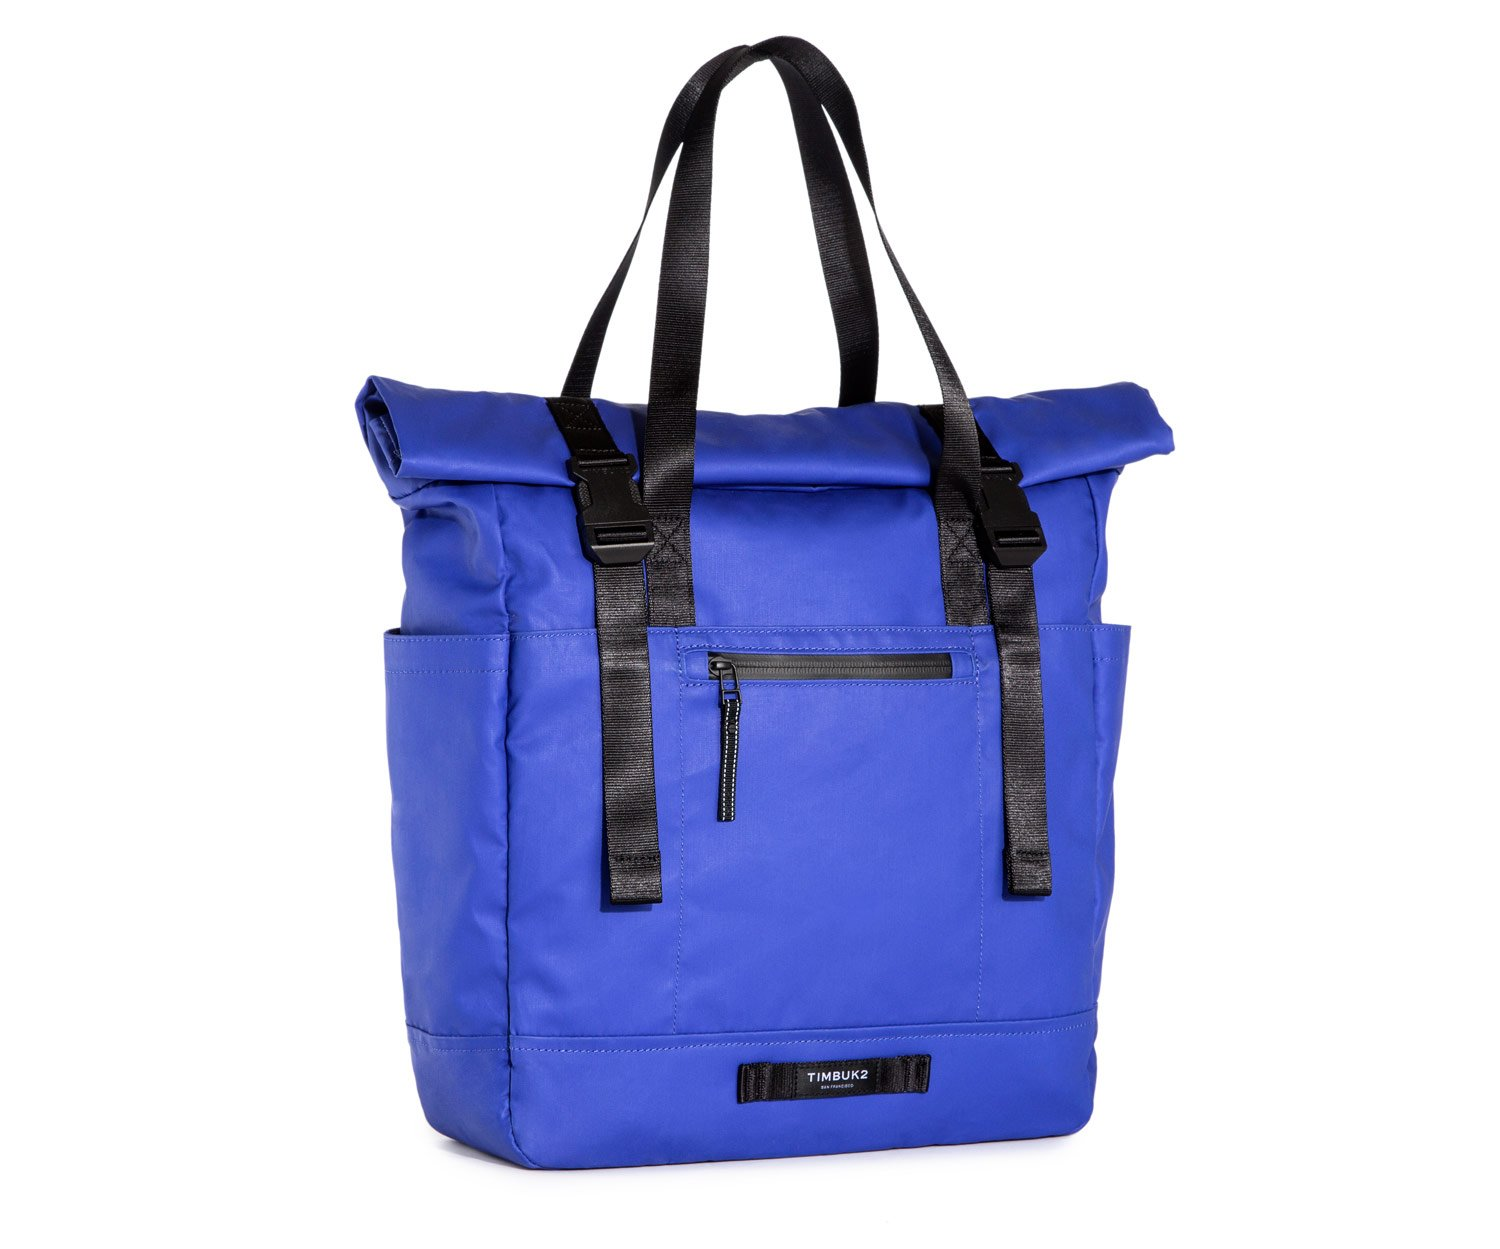 Timbuk2 Forge Tote Twill, OS, Intensity, One Size